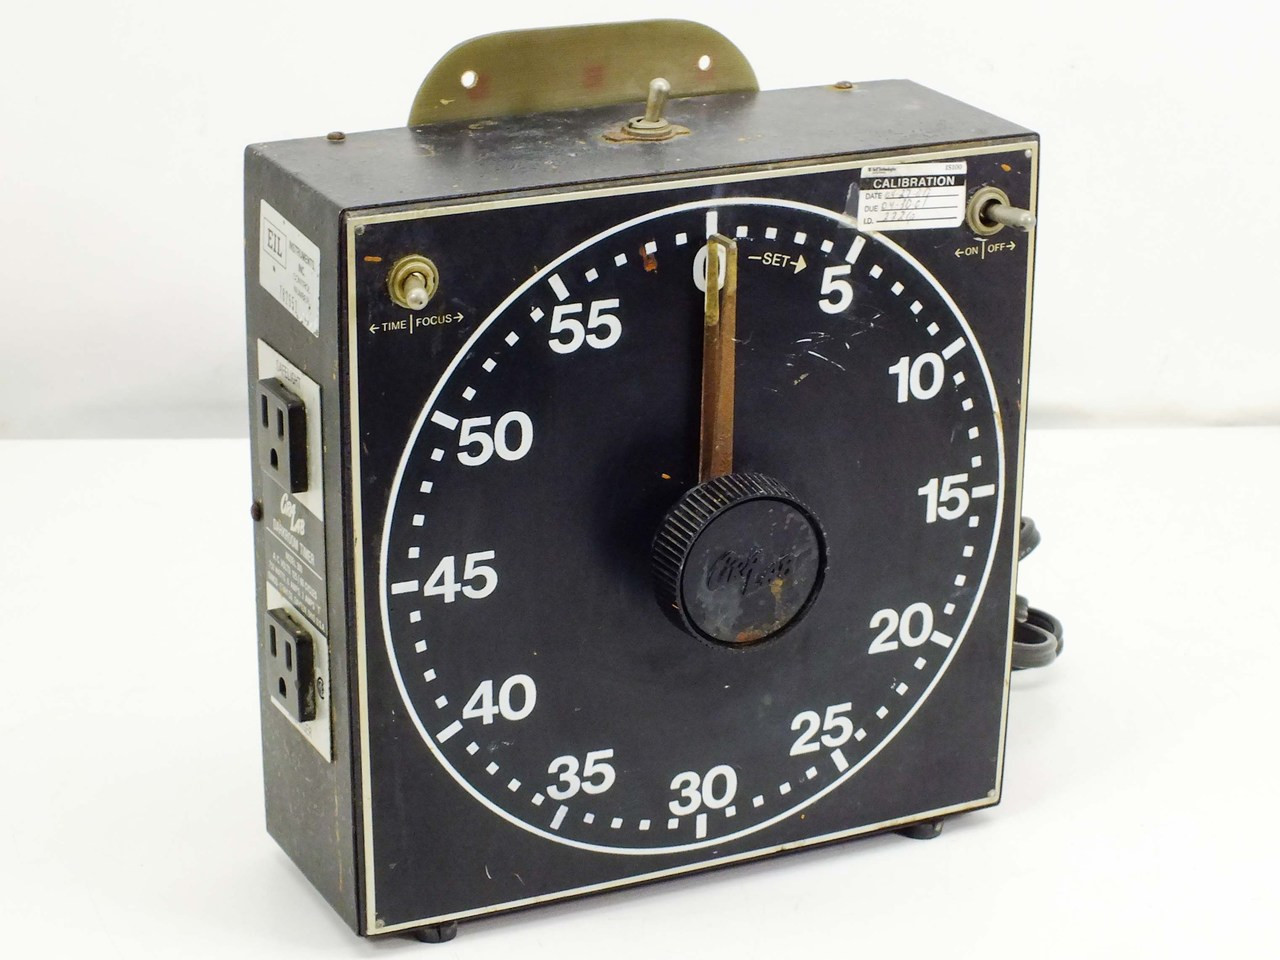 dimco gray 300 gralab darkroom timer 1.40__08268.1490111102?c=2 dimco gray 300 gralab darkroom timer recycledgoods com  at eliteediting.co